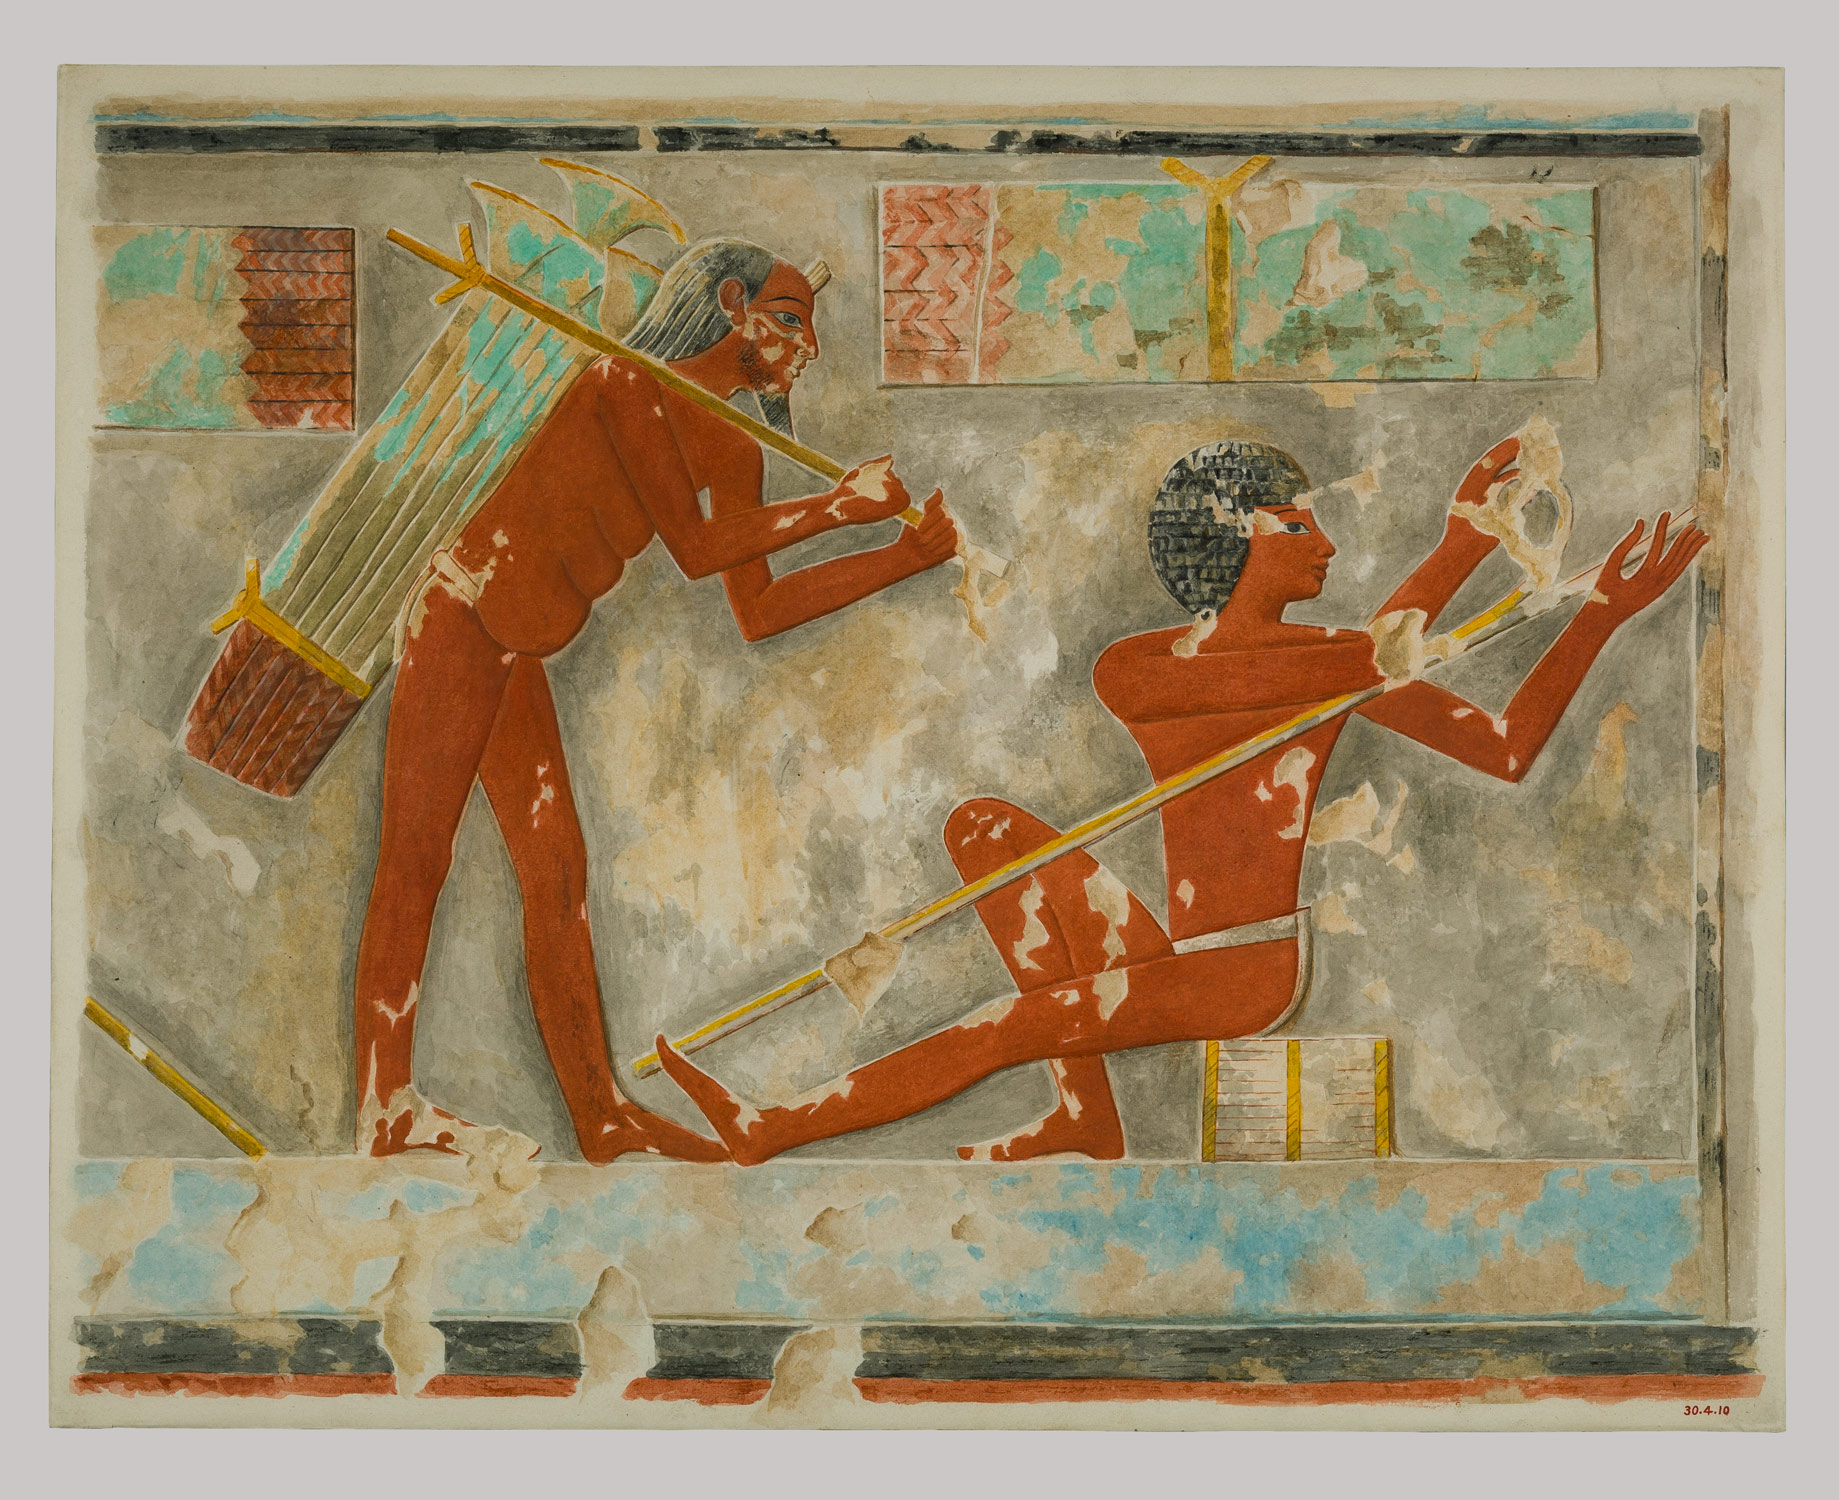 This facsimile painting copies a detail from a scene of men harvesting and working papyrus in the tomb of Puyemre (TT 39) at Thebes. Facsimile 30.4.11 illustrates another part of this scene. https://www.metmuseum.org/toah/works-of-art/30.4.10/